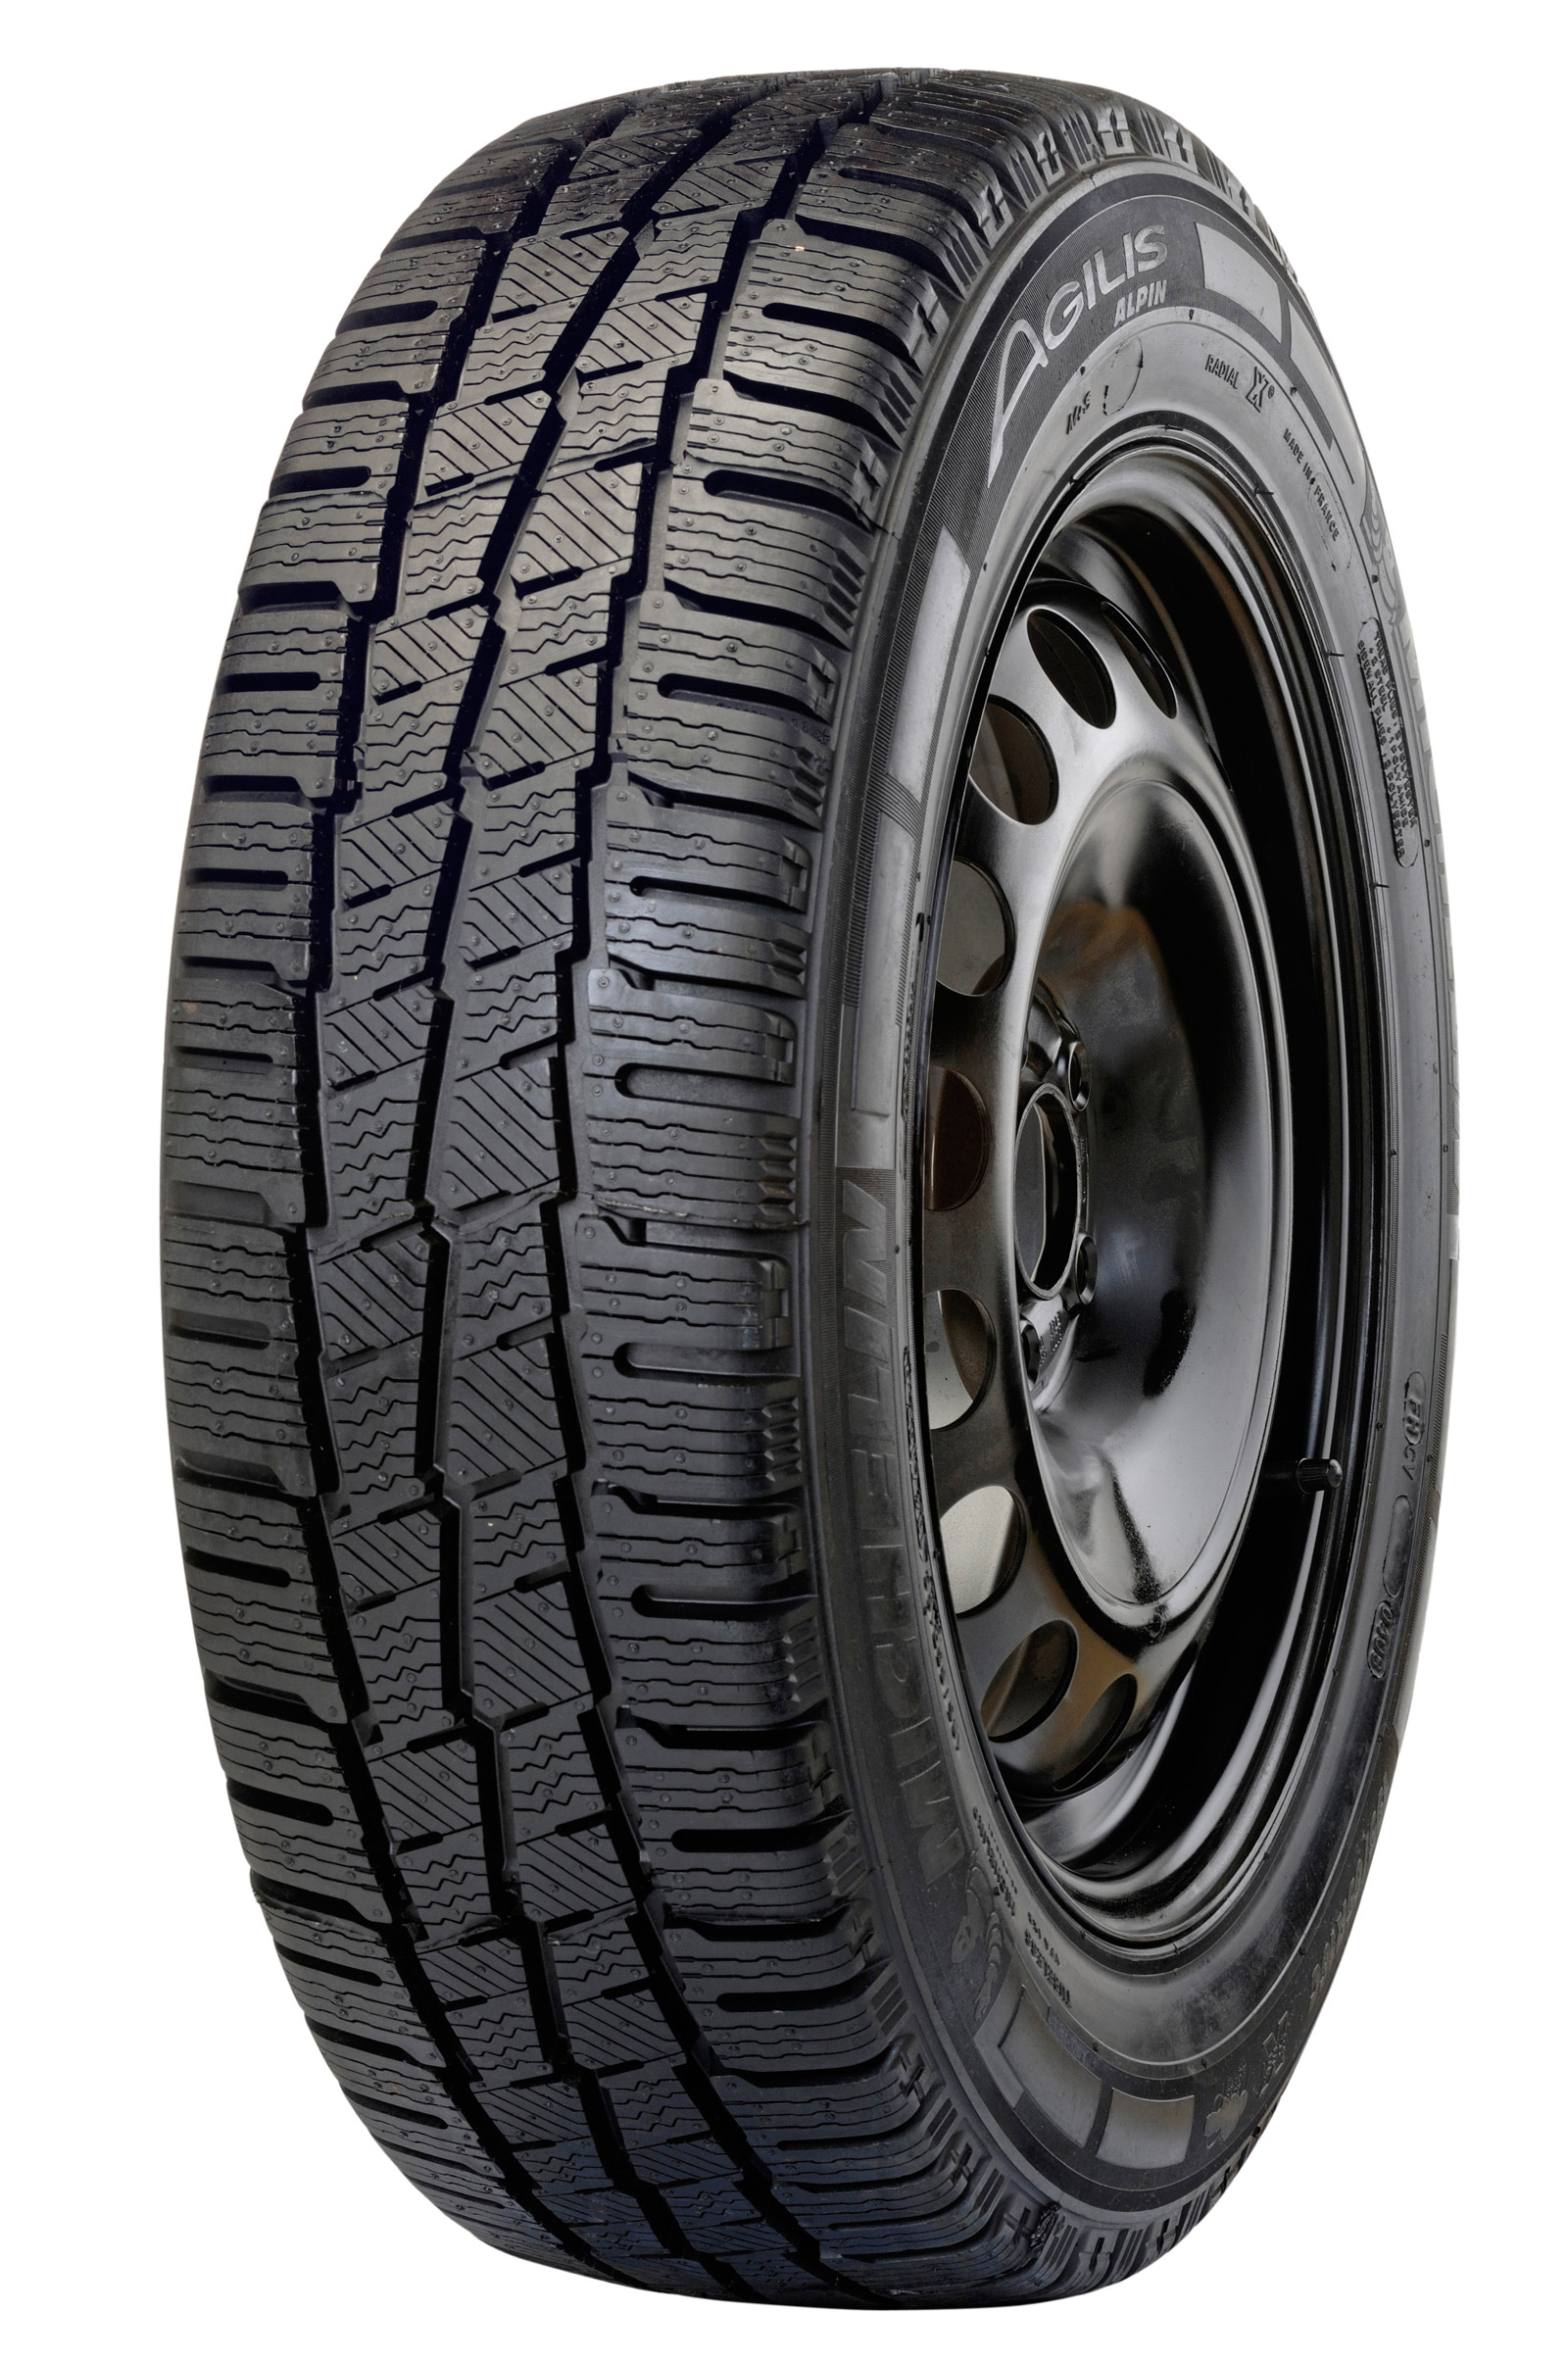 Зимняя шина Michelin Agilis Alpin 195/75 R16 107/105R